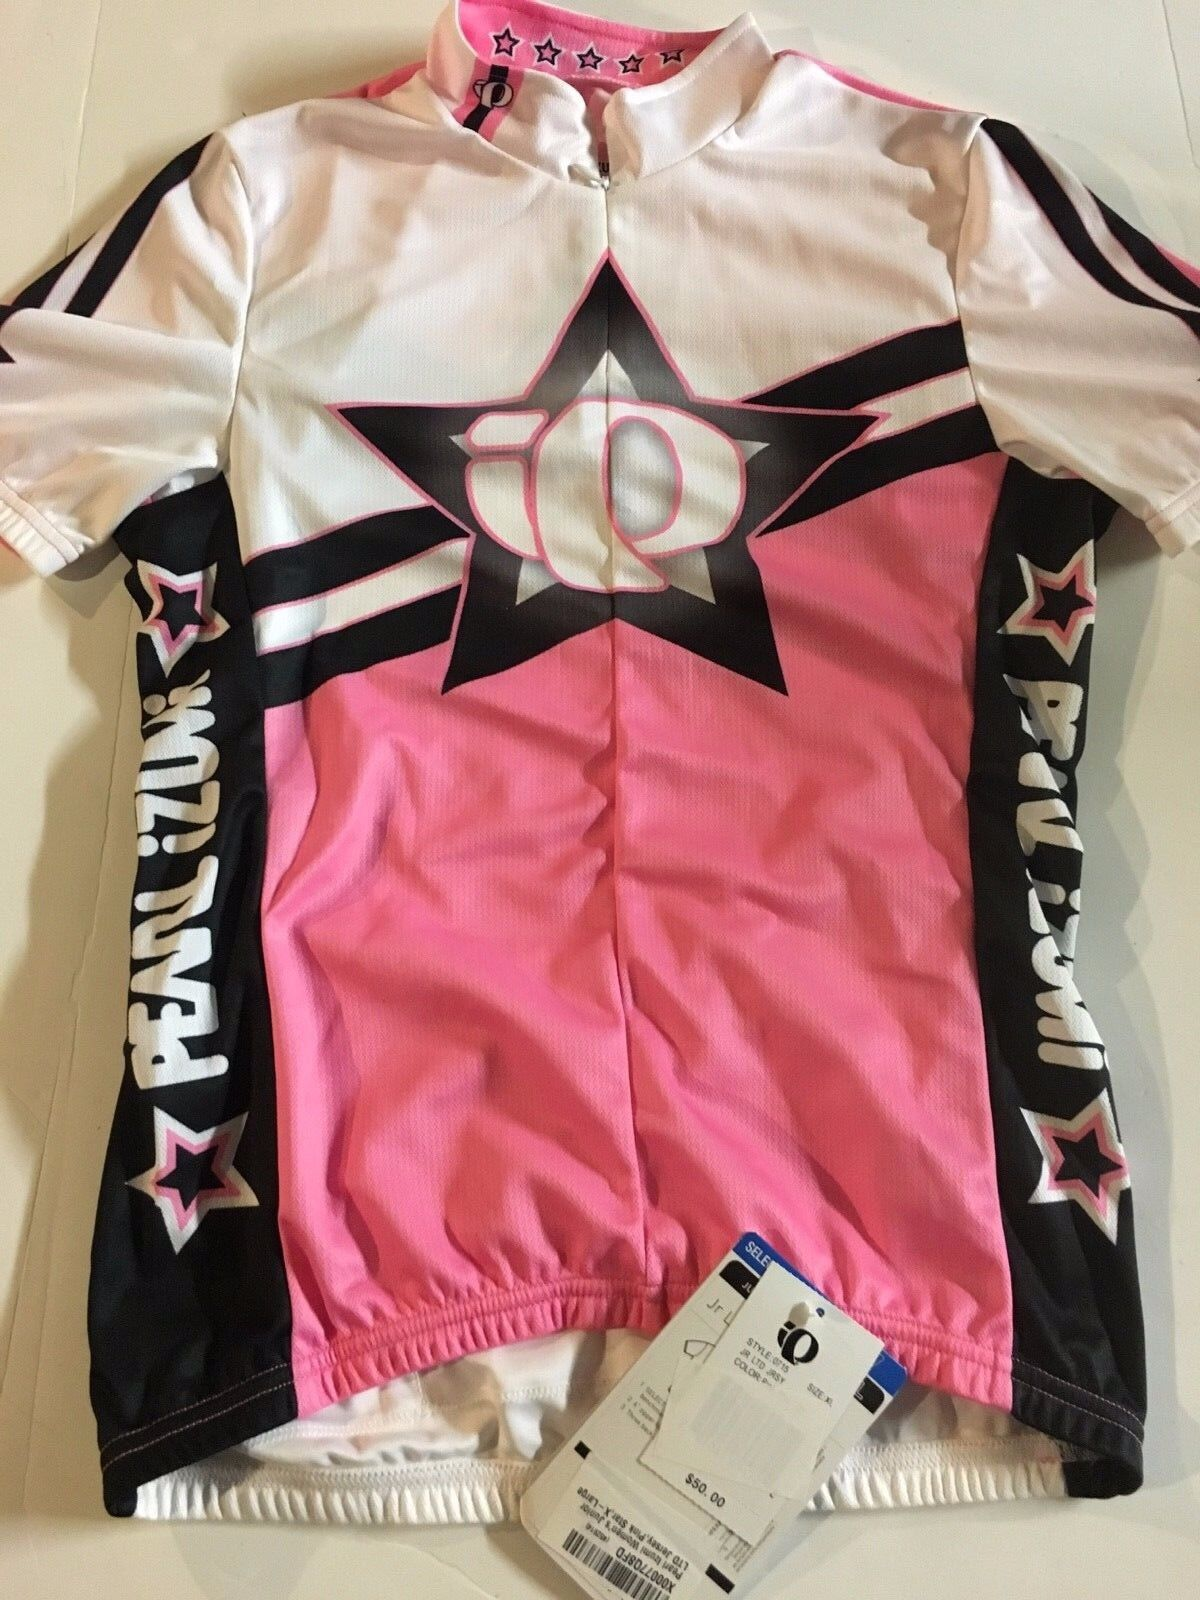 Pearl Izumi Women's Junior LTD Jersey, Pink Star, XL, New with tags